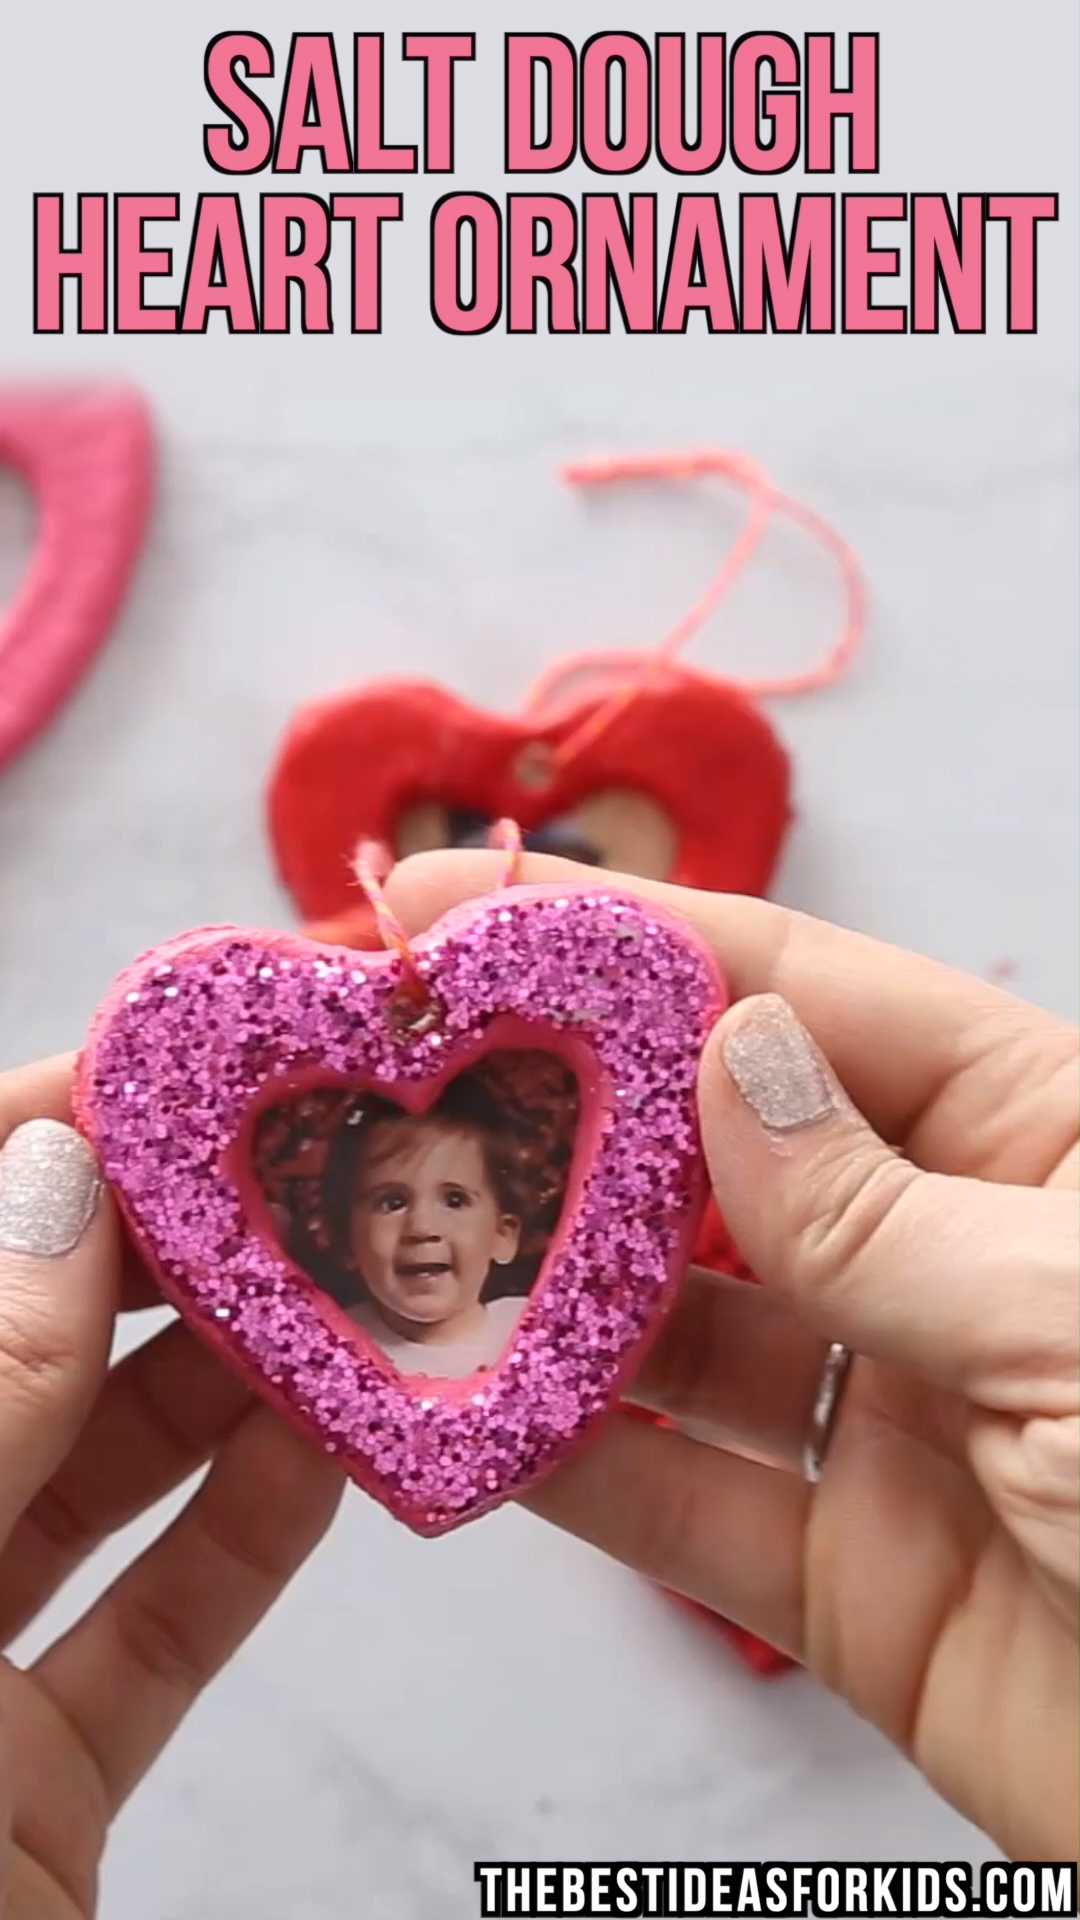 SALT DOUGH HEARTS ❤️ - these salt dough hearts would be a really fun craft to make with kids for Valentine's Day or Mother's Day!  #bestideasforkids